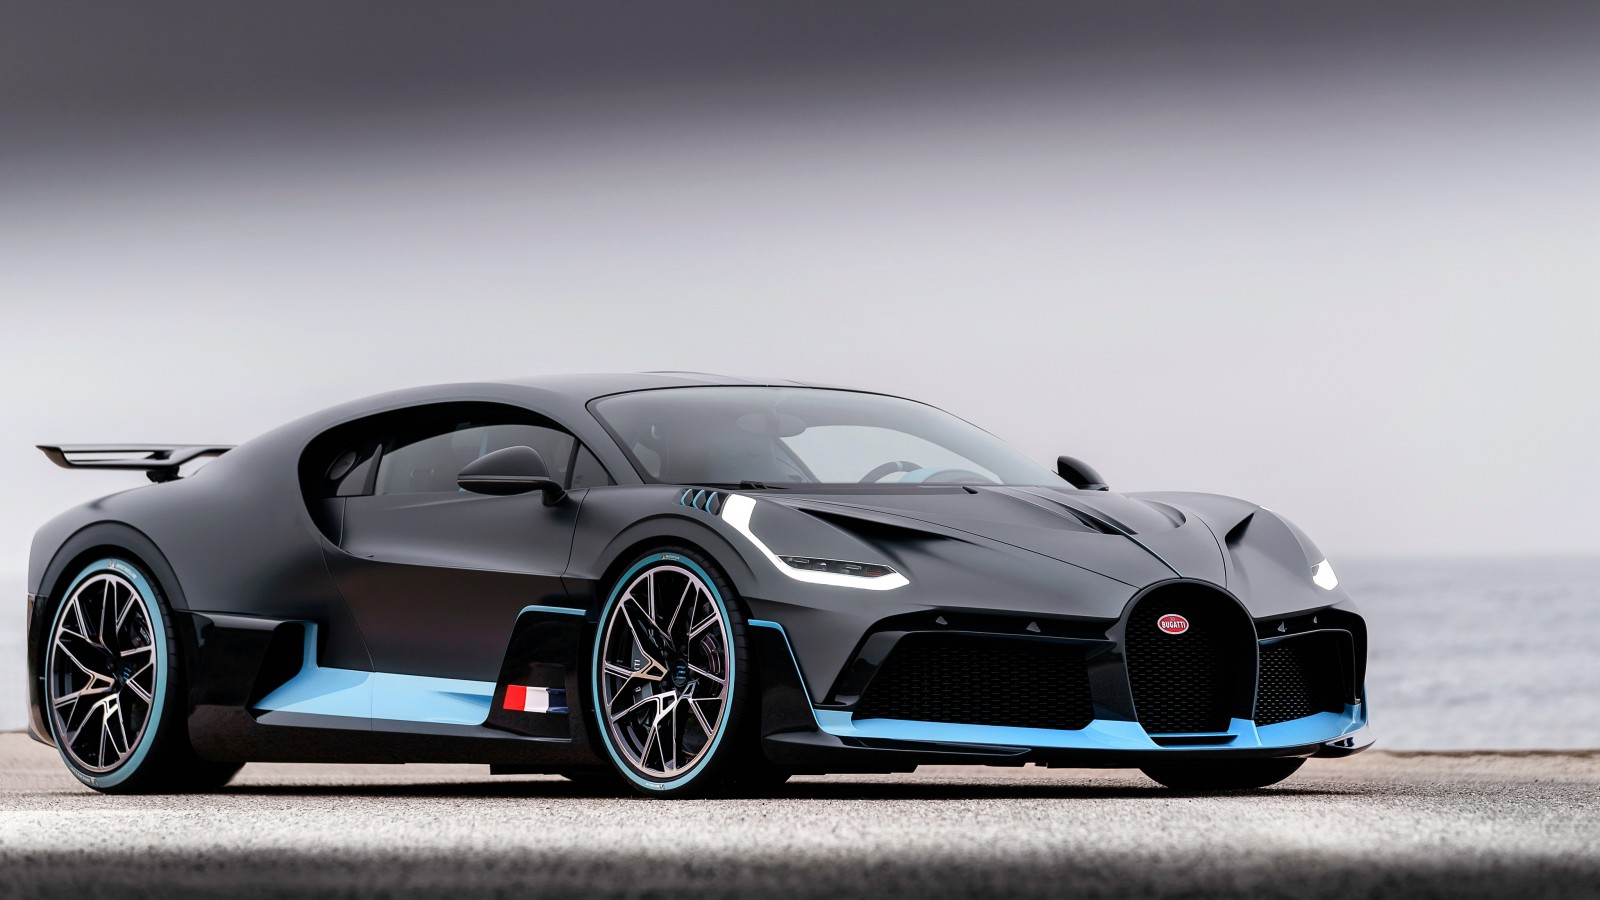 Hd Wallpaper Car Widescreen Bugatti Divo 4k Wallpaper Hd Car Wallpapers Id 11189